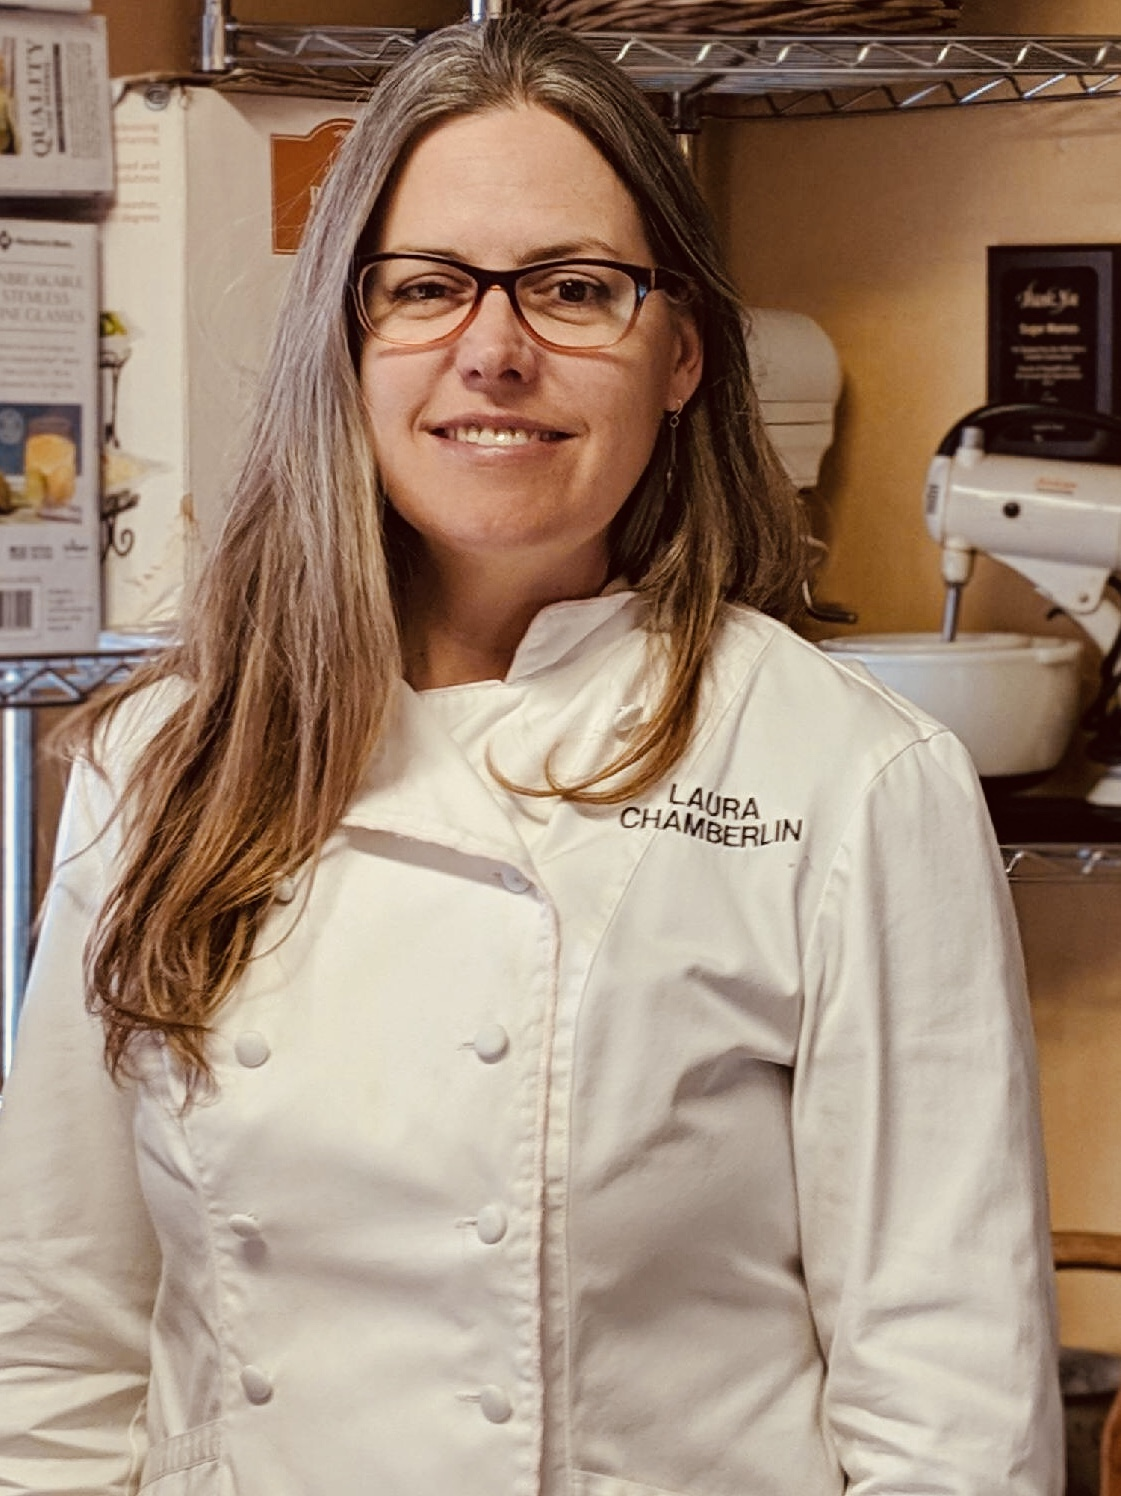 Chef Laura Chamberlin hones the versatility of cooking